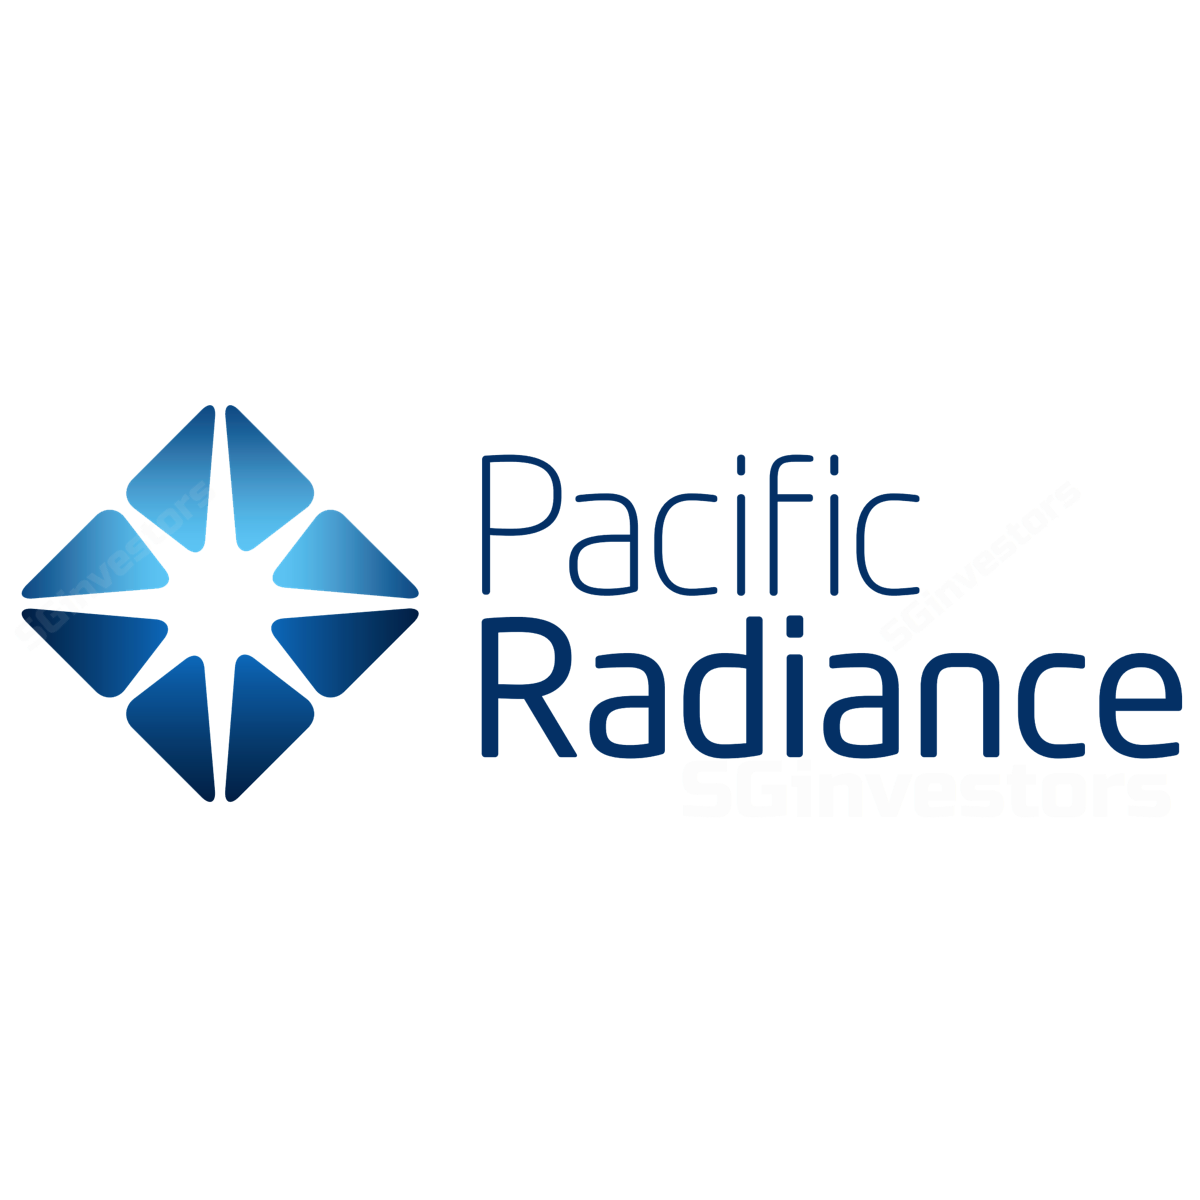 Pacific Radiance - DBS Vickers 2016-12-05: Turnaround takes time